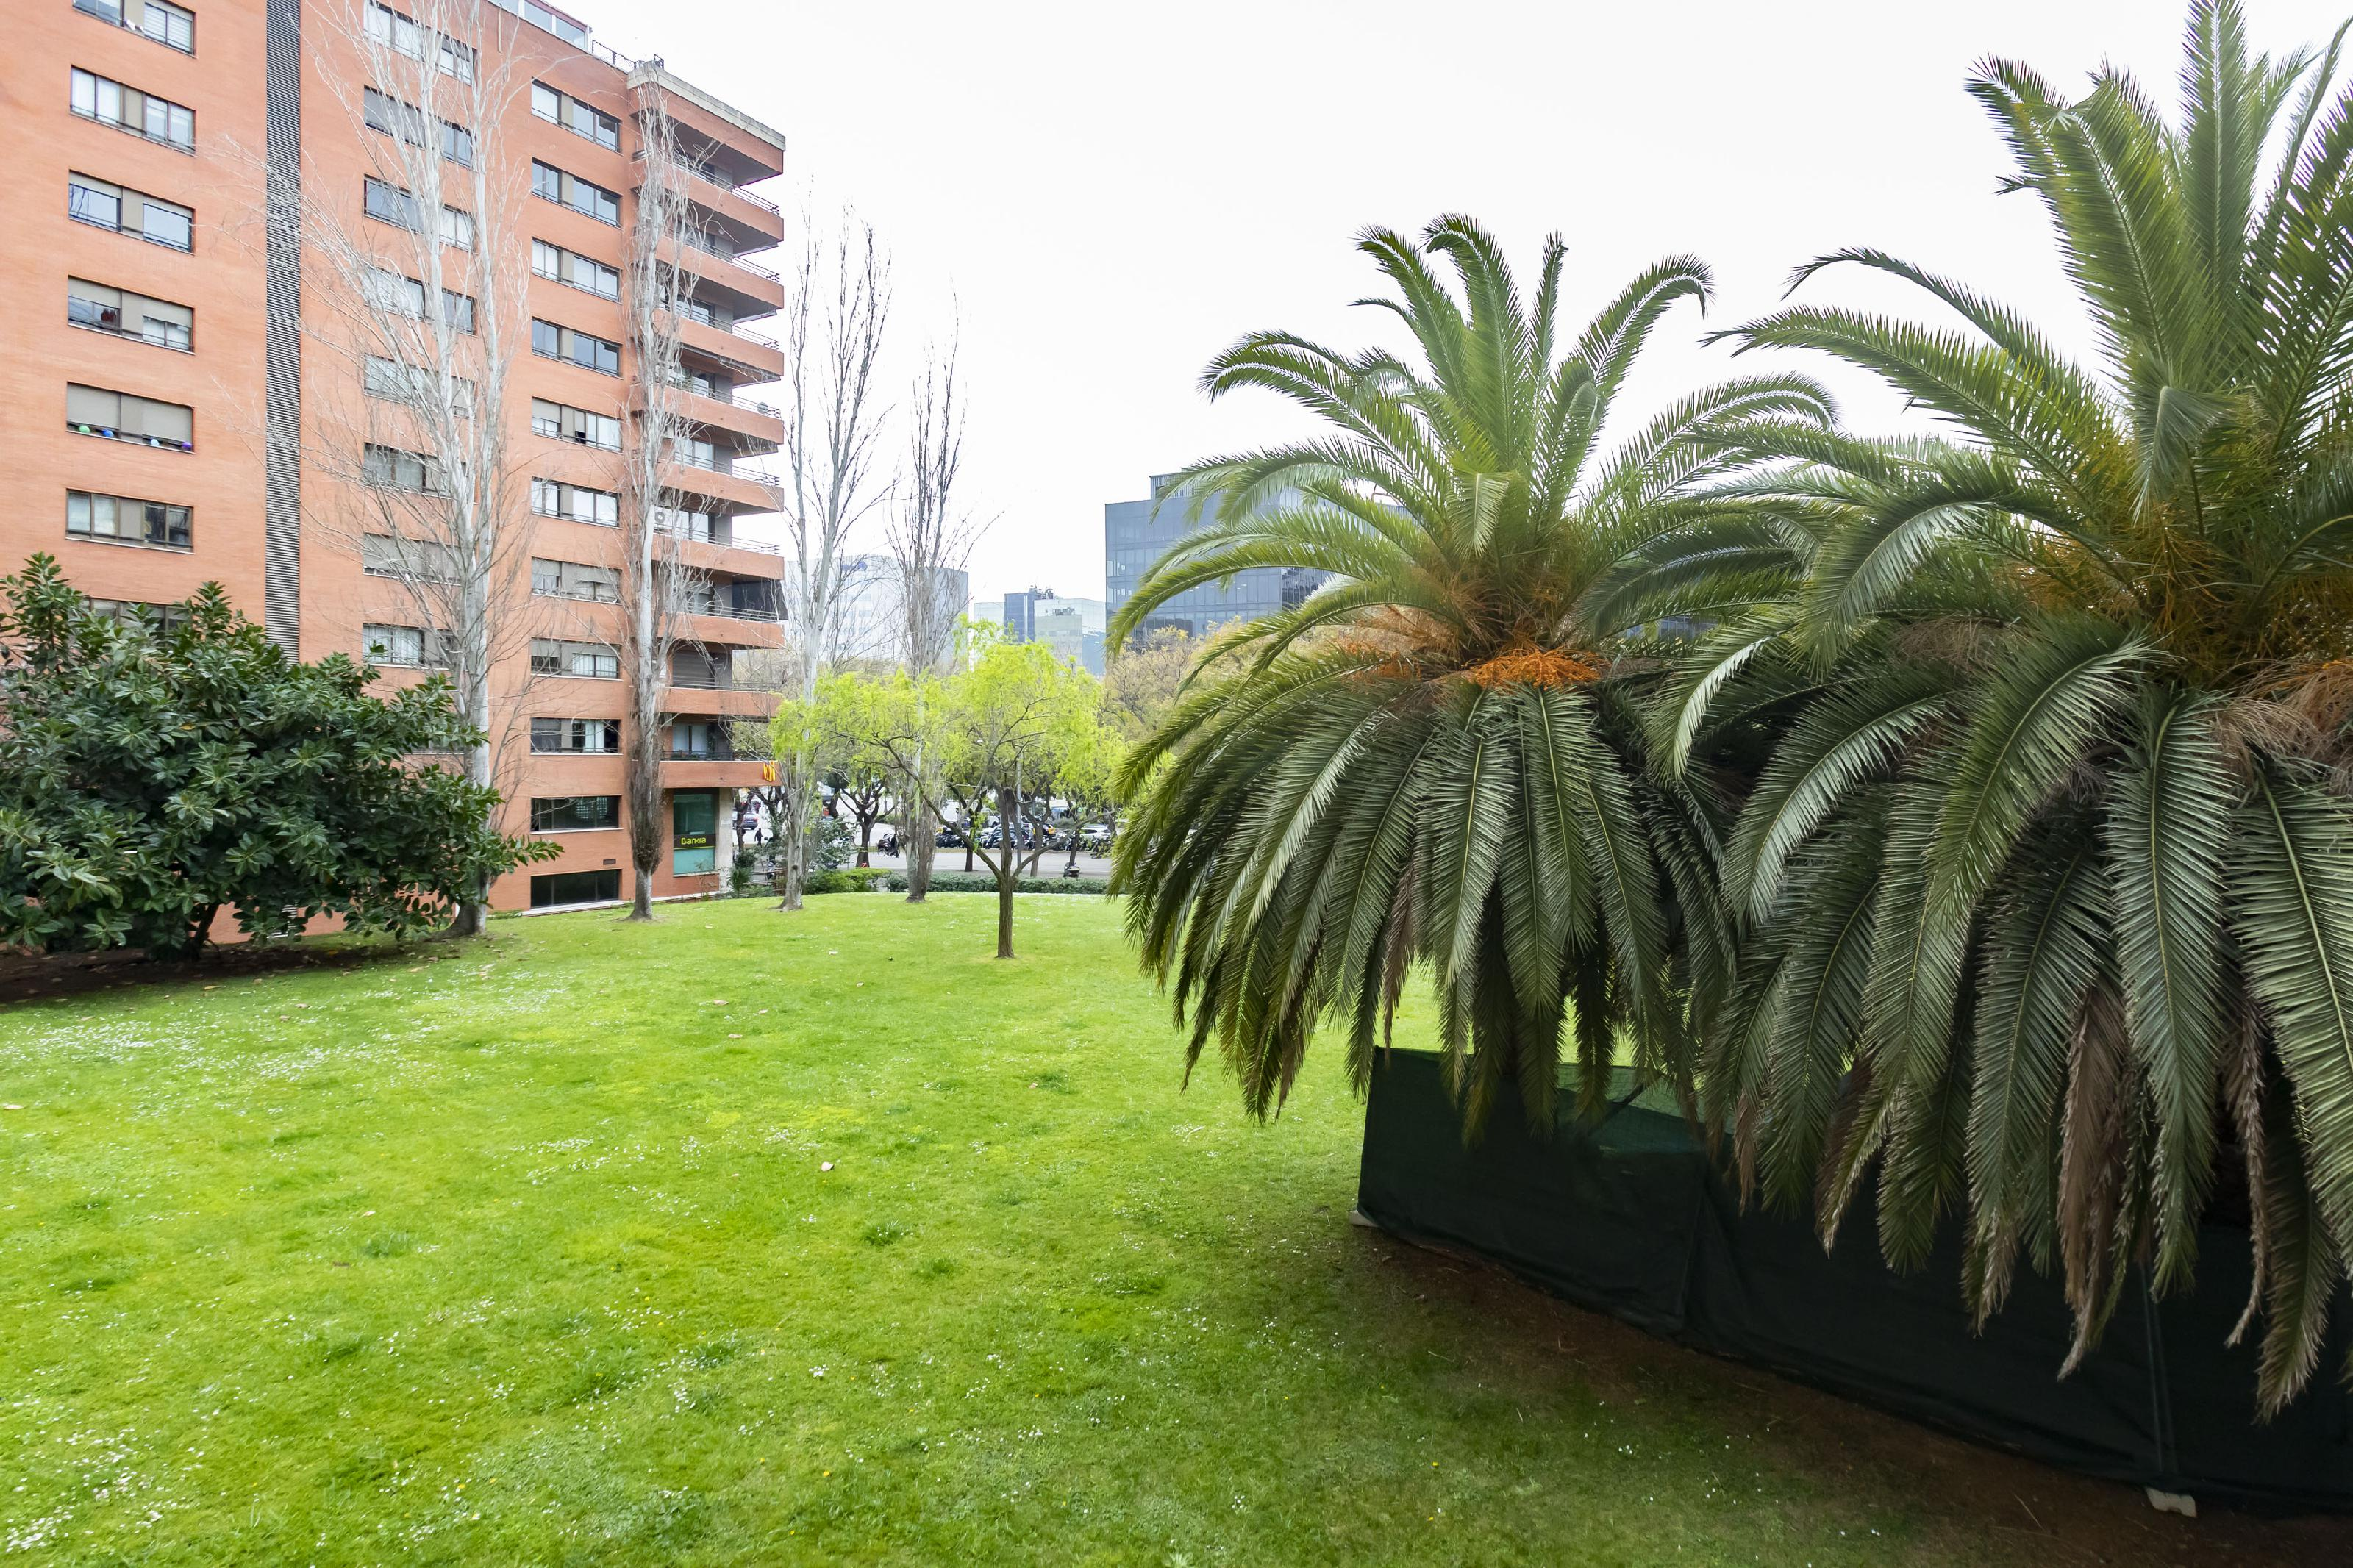 247020 Flat for sale in Les Corts, Les Corts 40